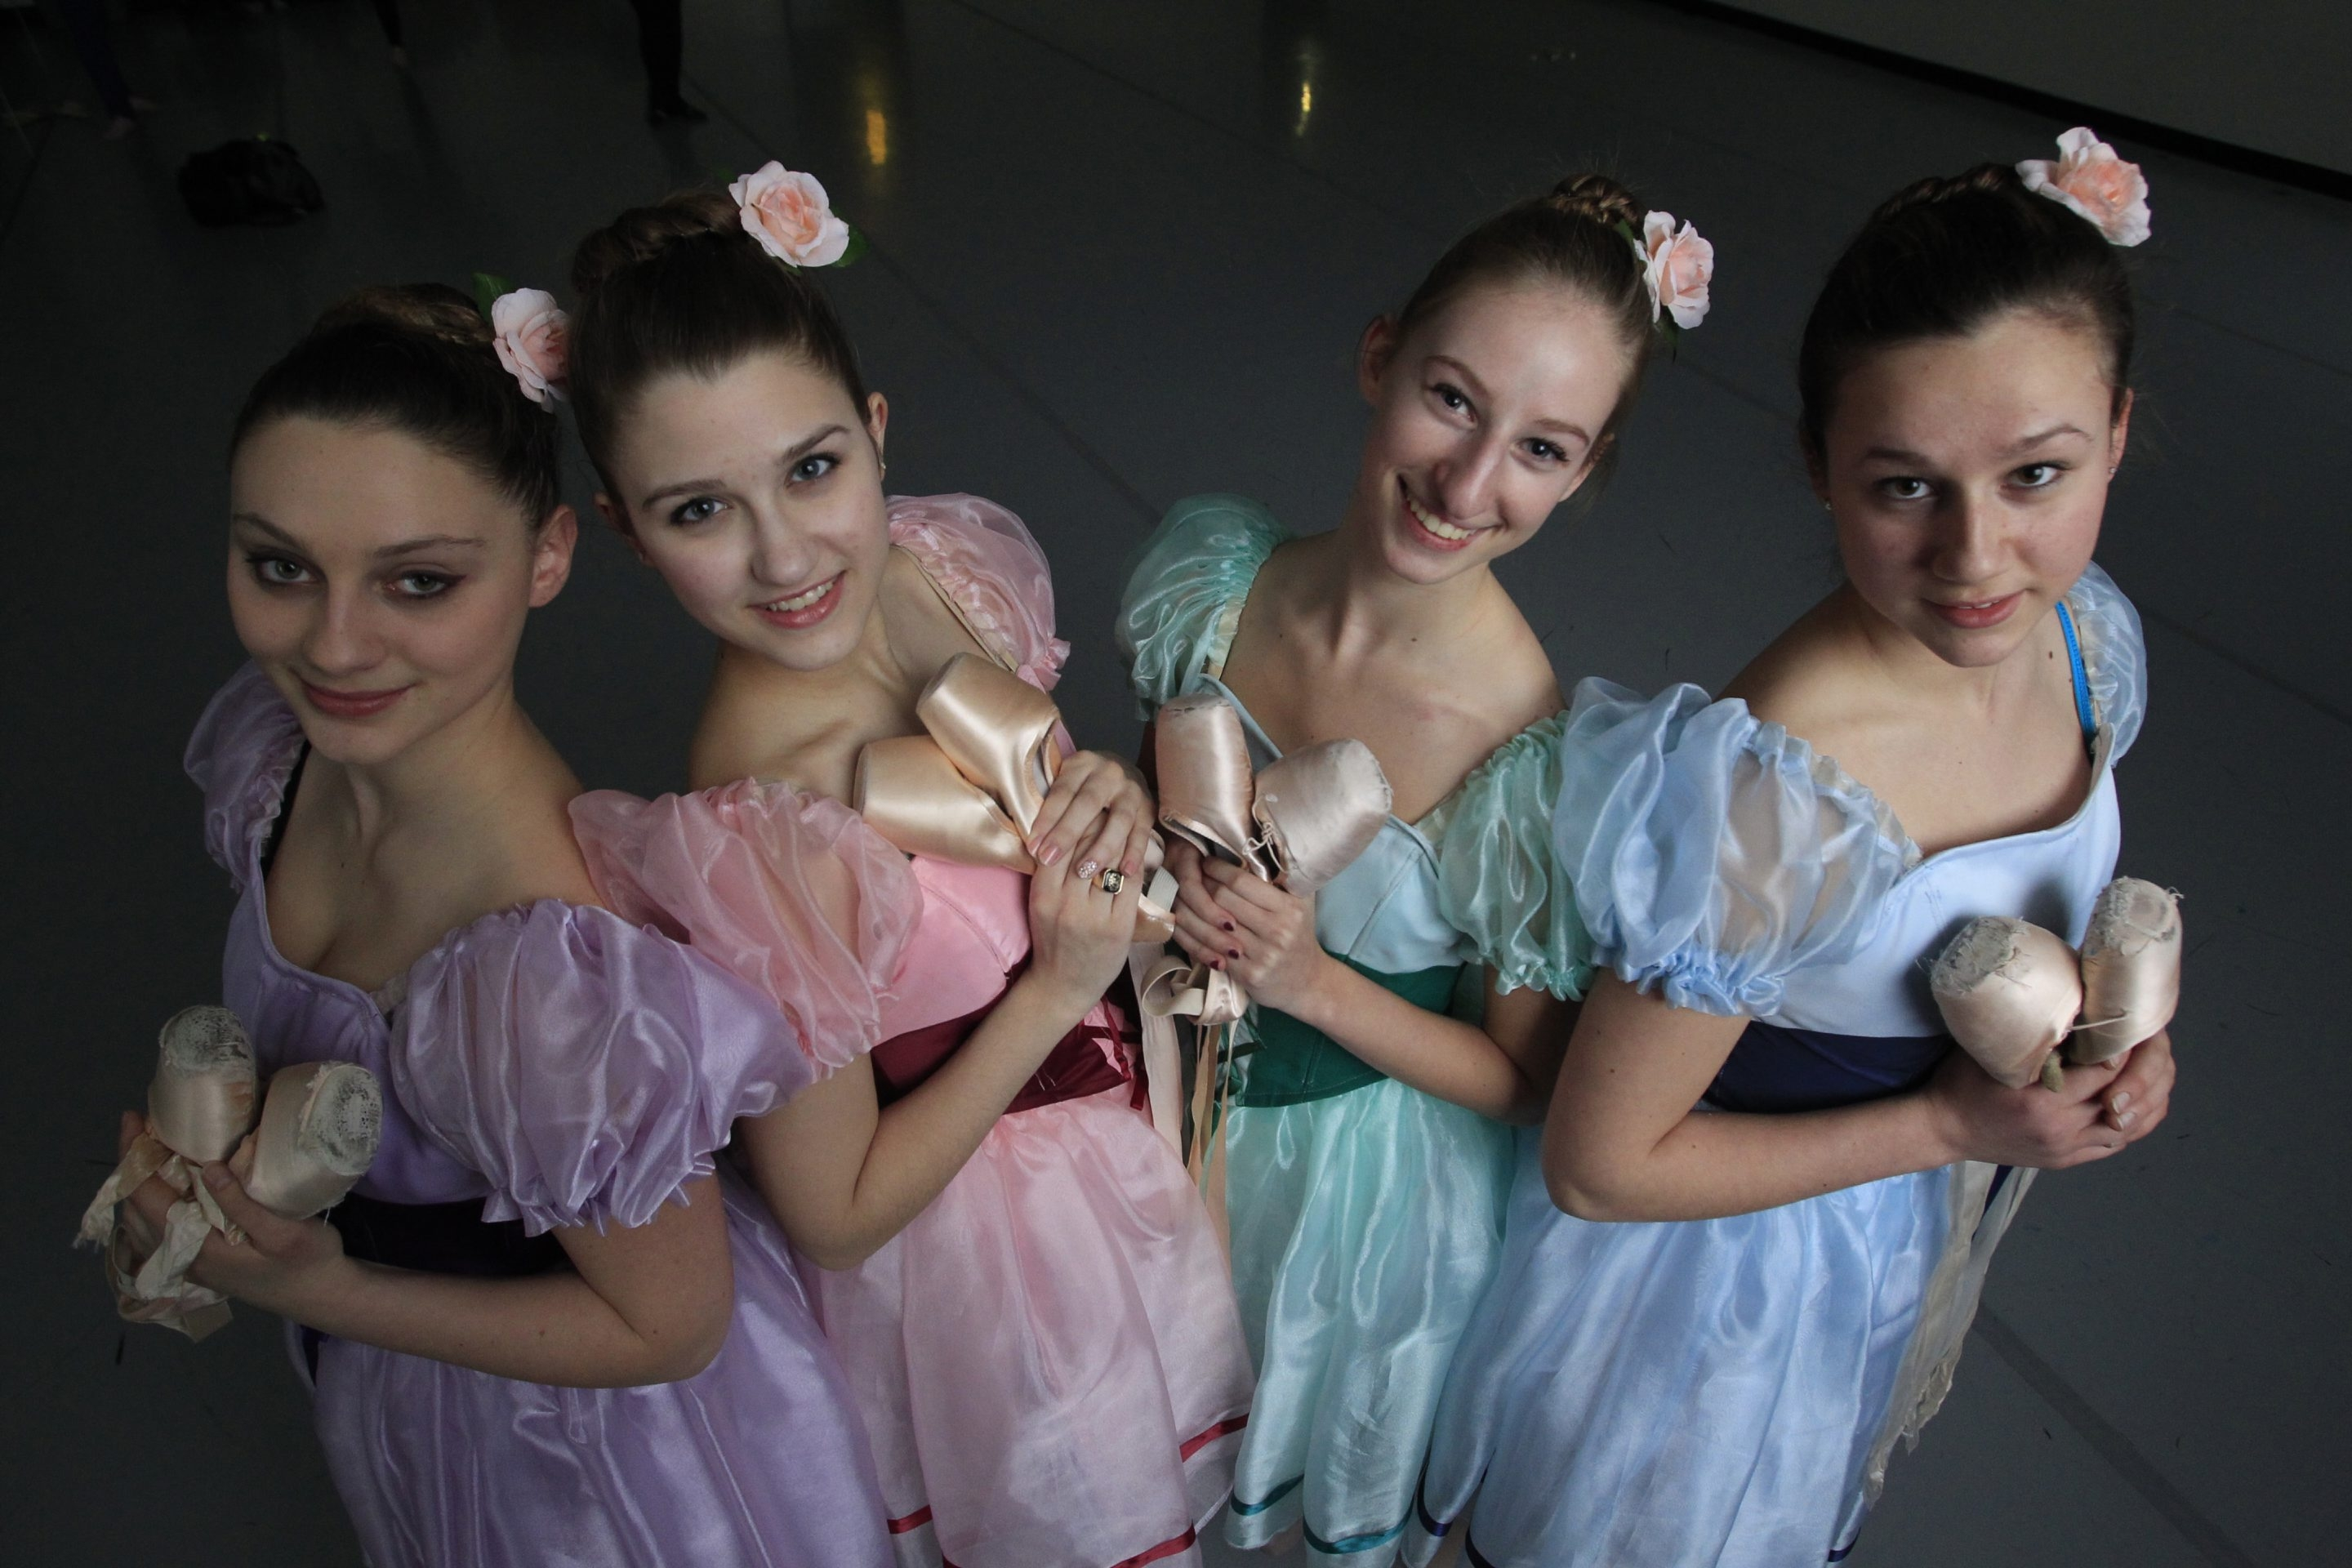 From right to left, Madison Rutherford, Bethany Kellner, Brigette Voisinet and Isabella Baeumler at the Royal Academy of Ballet and Dance.